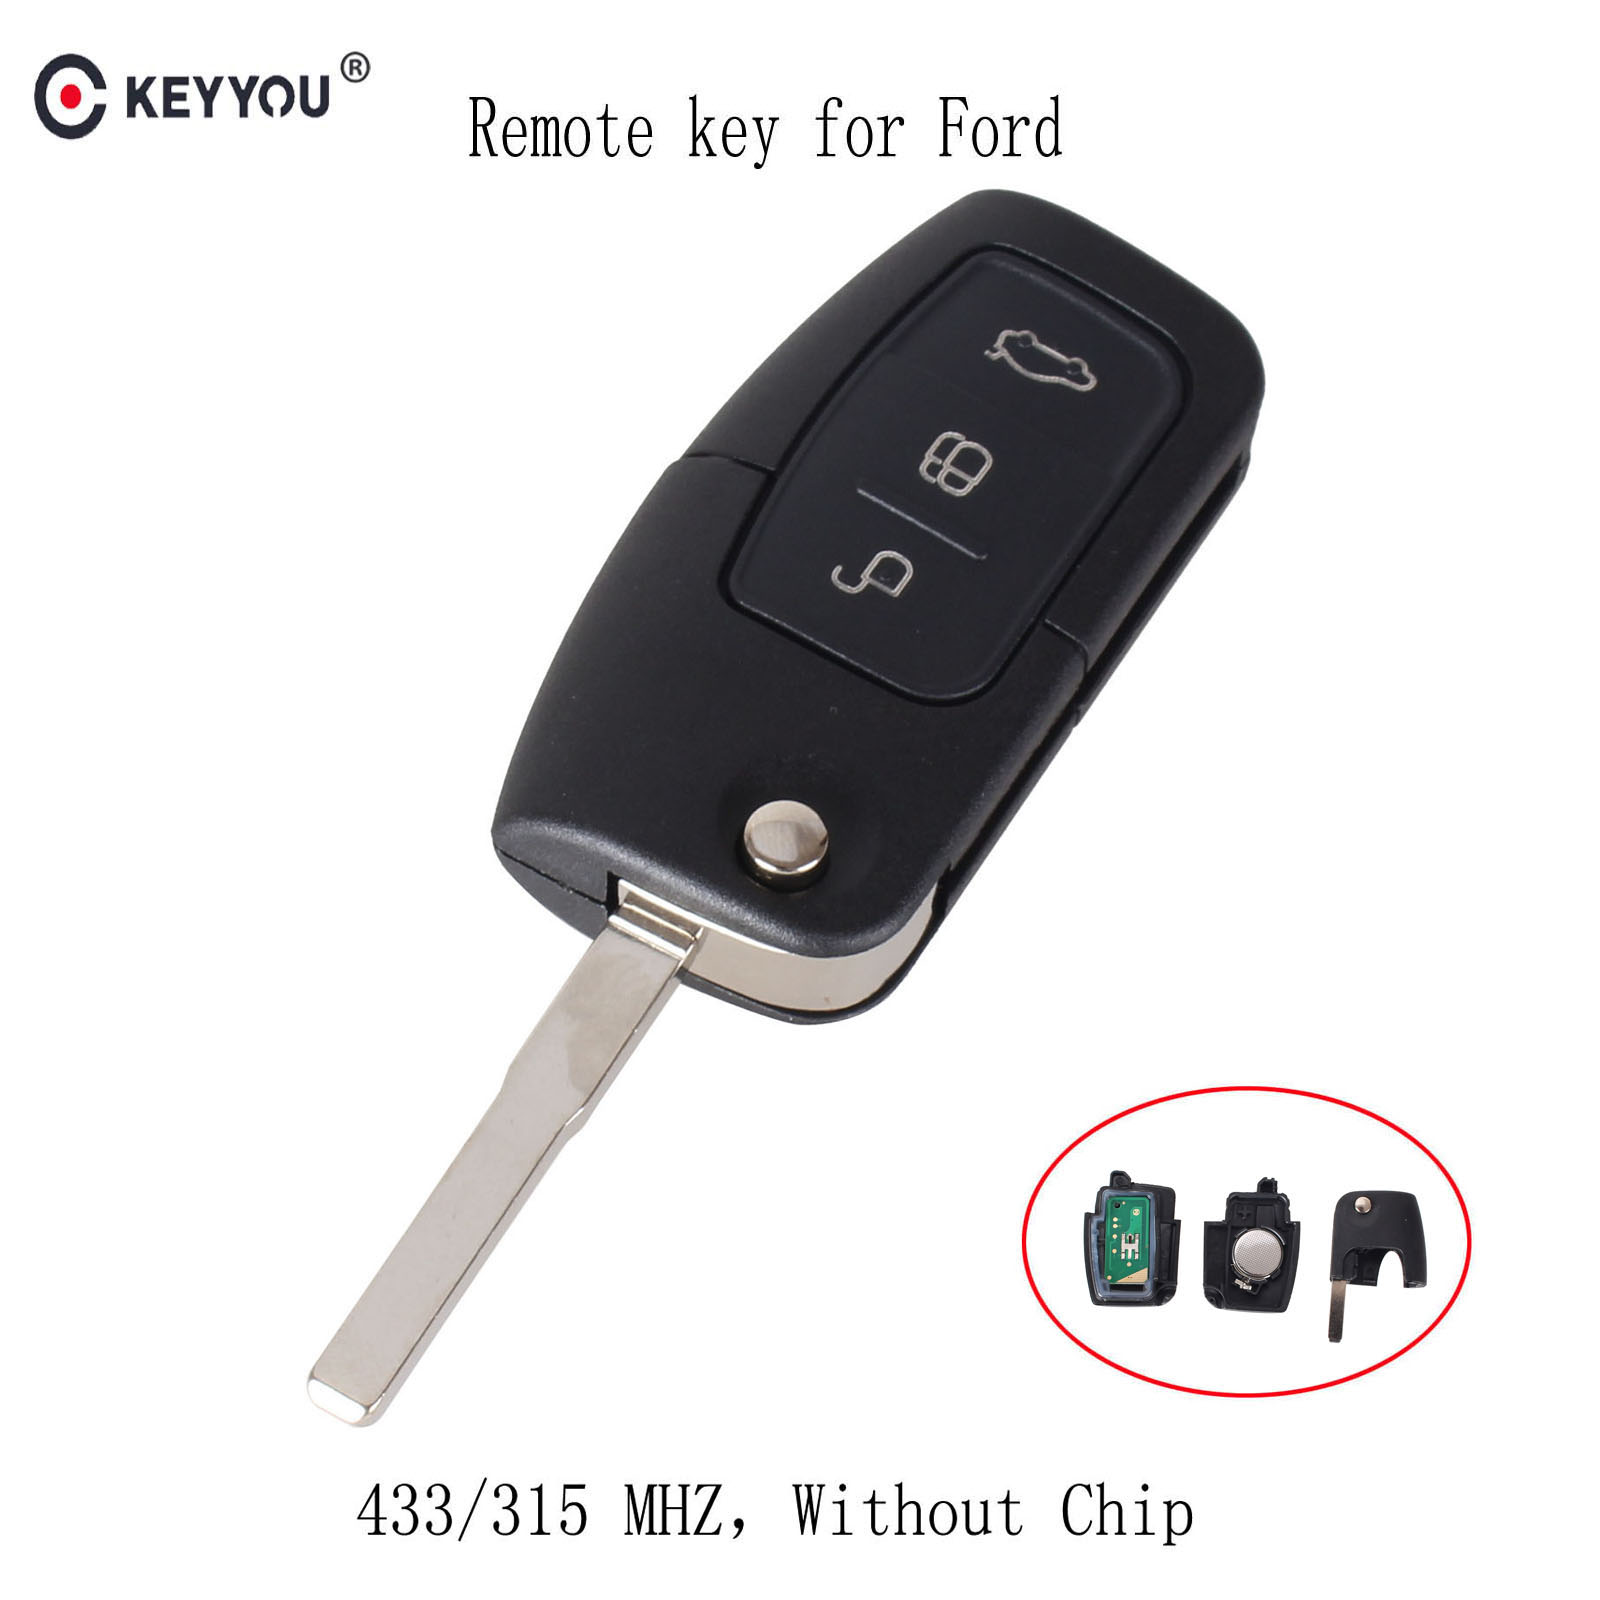 ontto Smart Car Key Case Key Fob Holder Remote Control Key Jacket with Key Chain 360 Degree Full Protection TPU Key Shell for Ford Mondeo Focus 3 MK3 ST Kuga Fiesta Escape Ecosport Titanium Silver